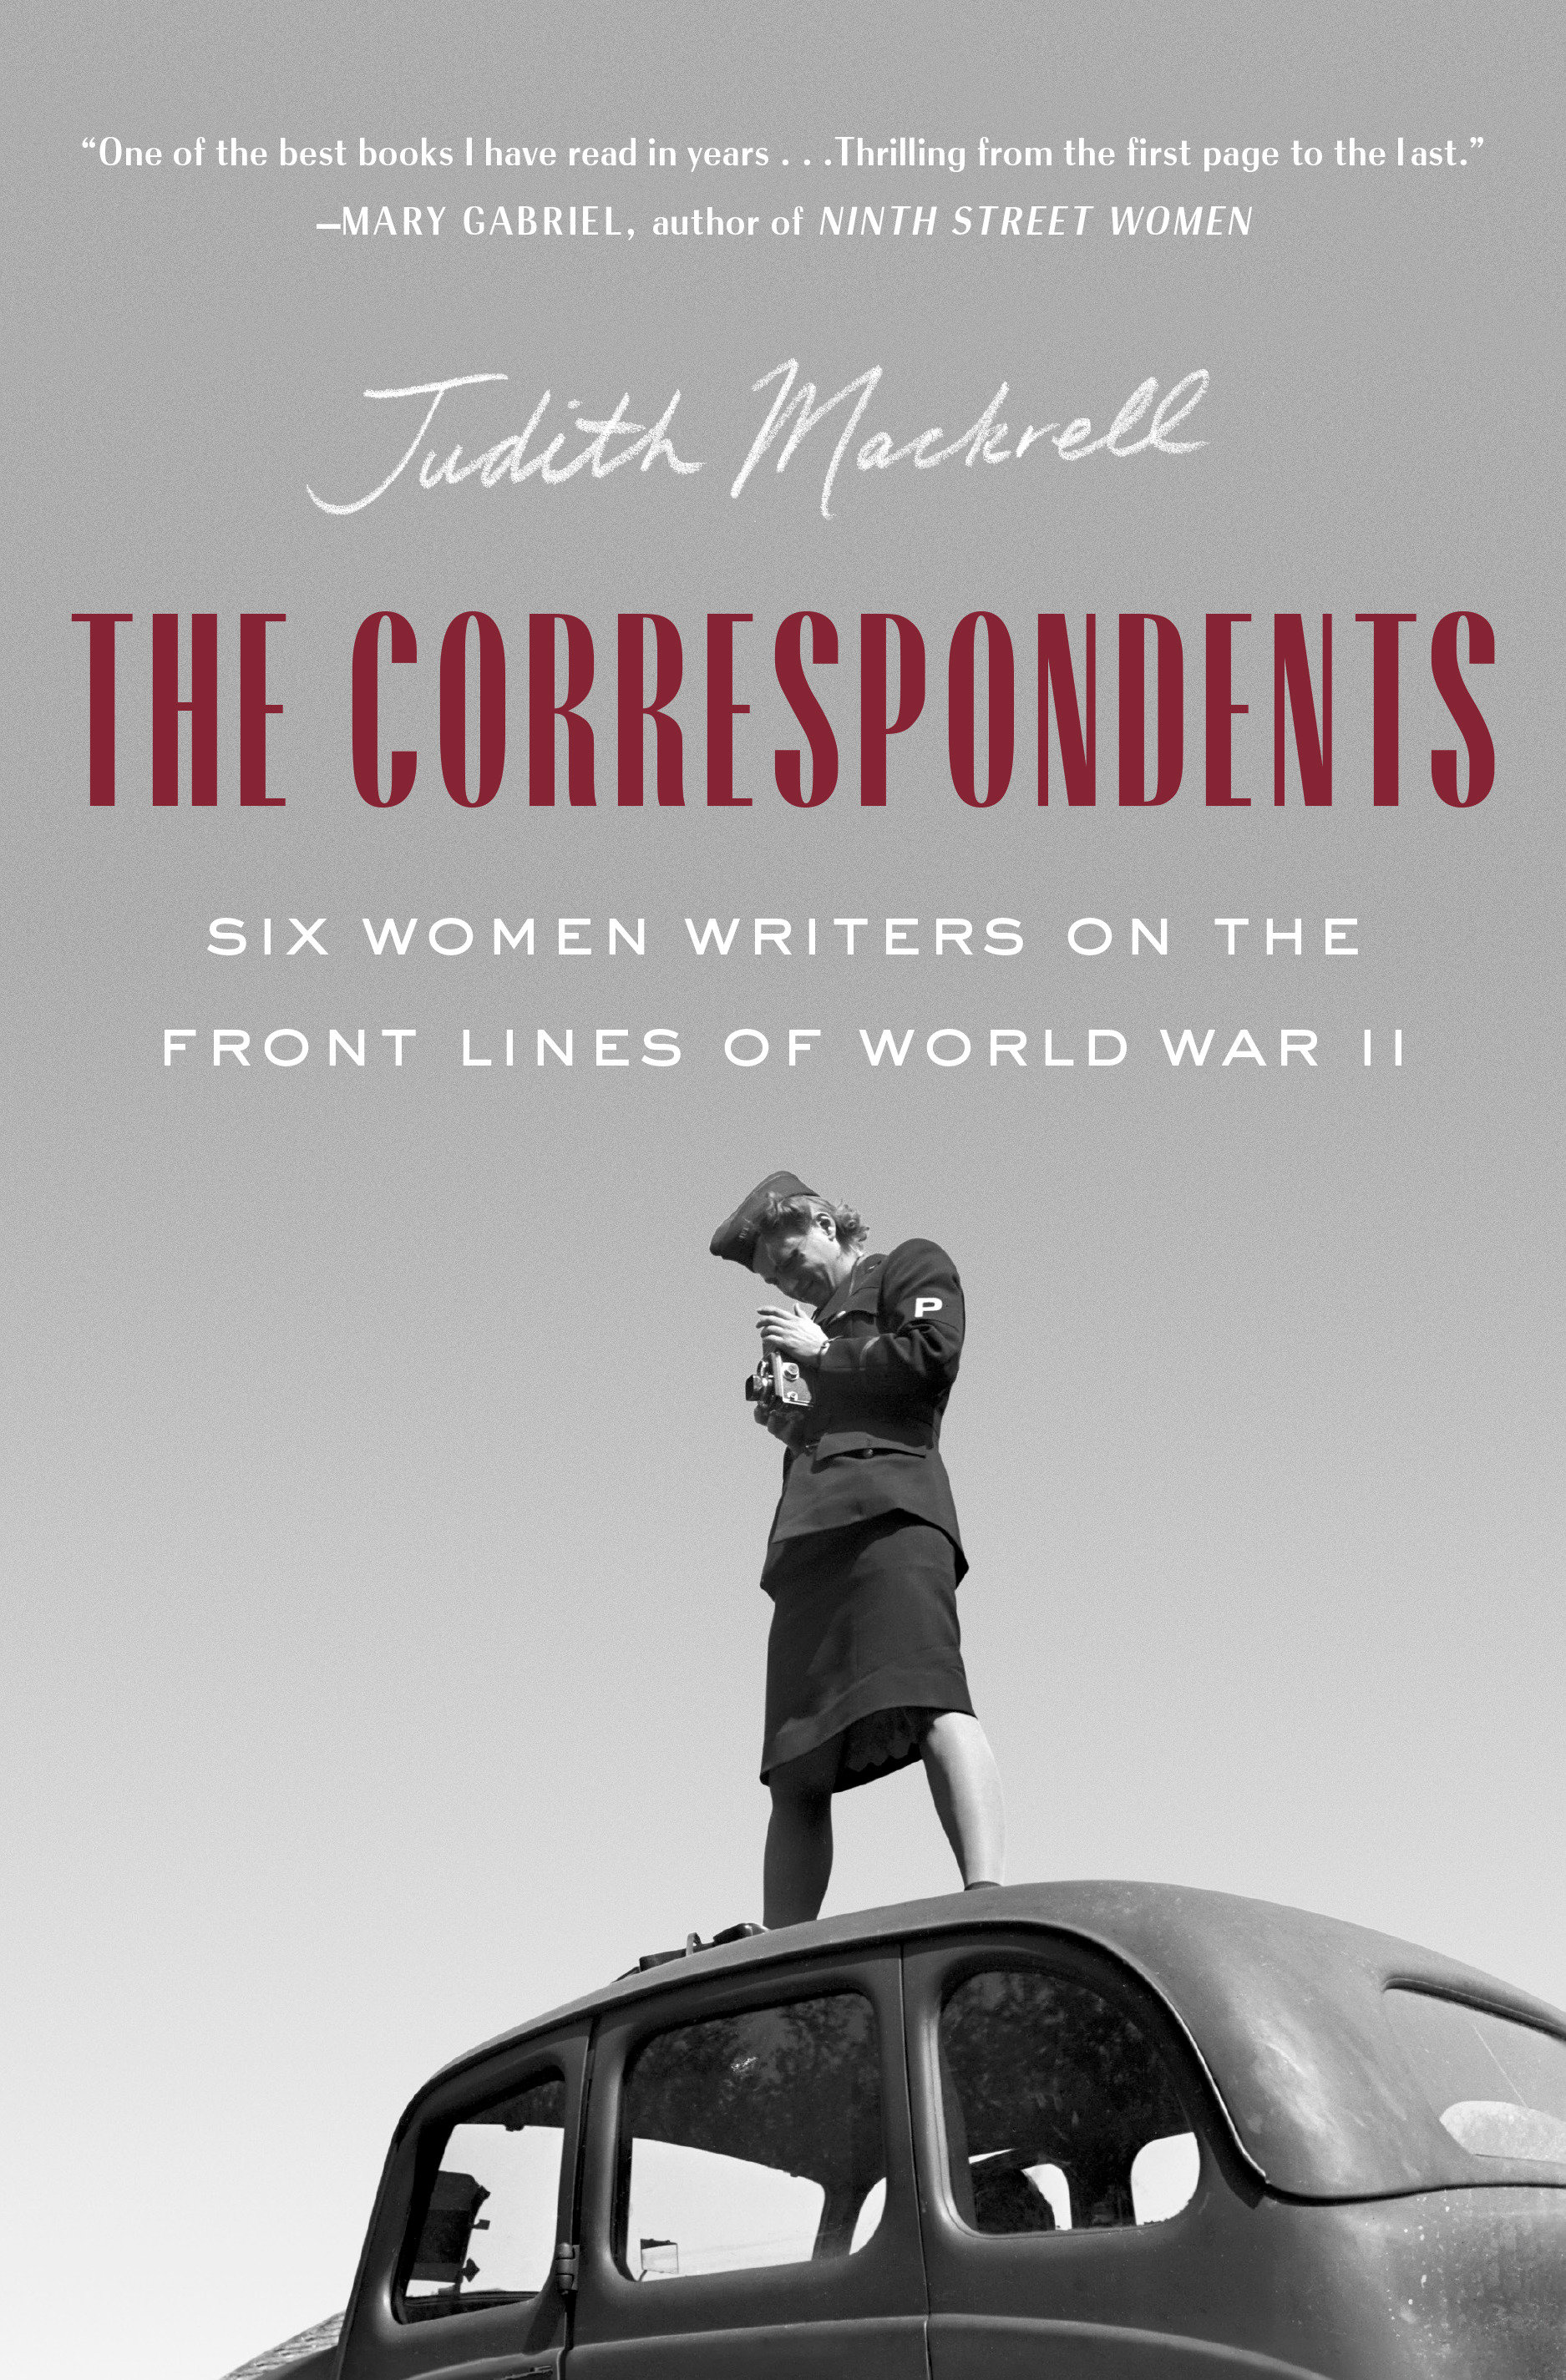 The Correspondents Six Women Writers on the Front Lines of World War II